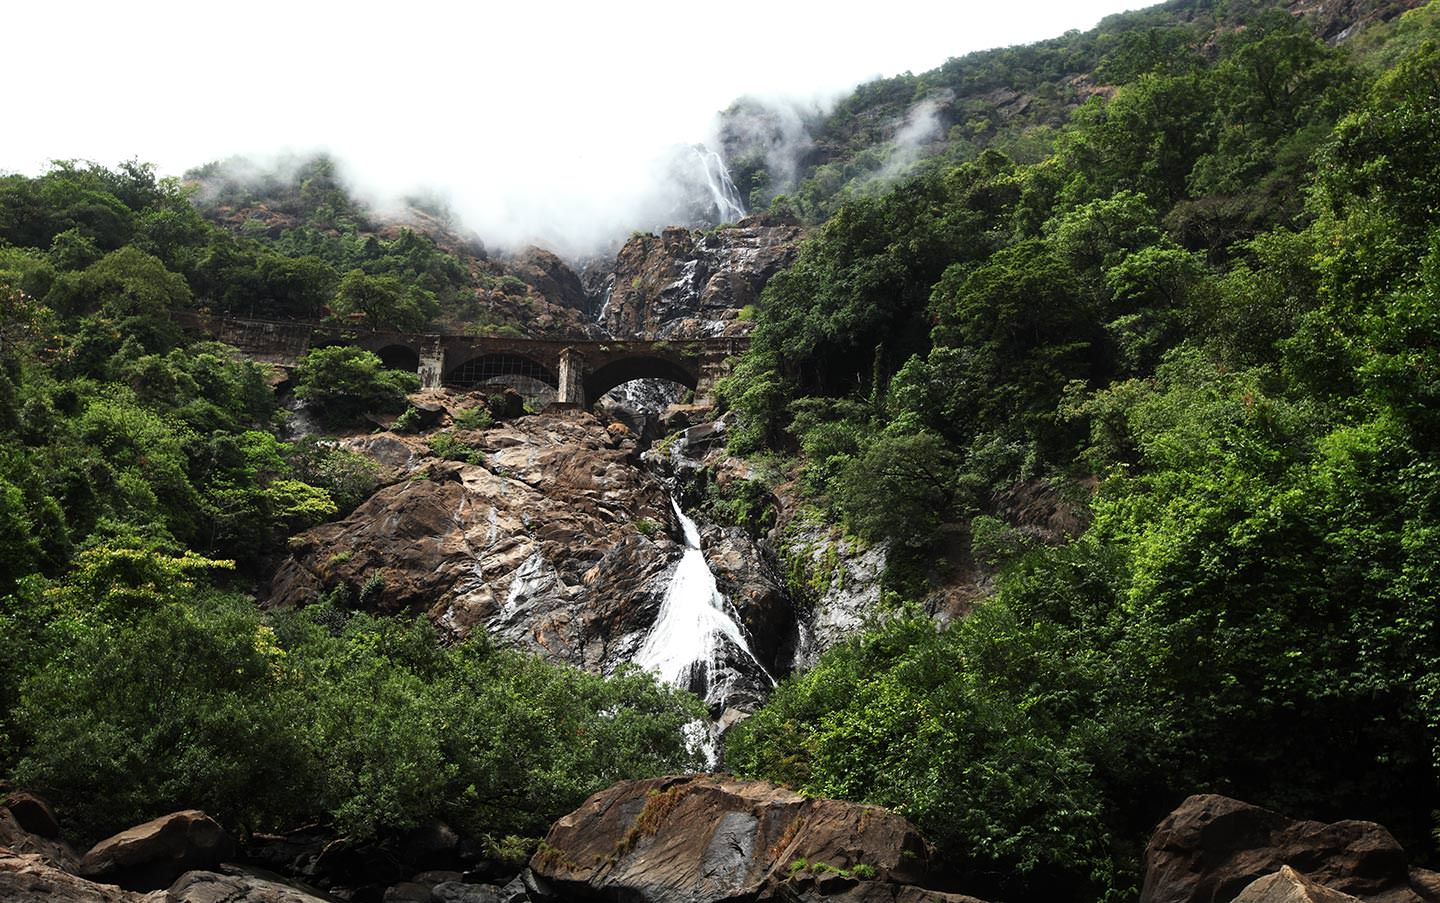 Dudhsagar Waterfalls with hard green forest, Goa